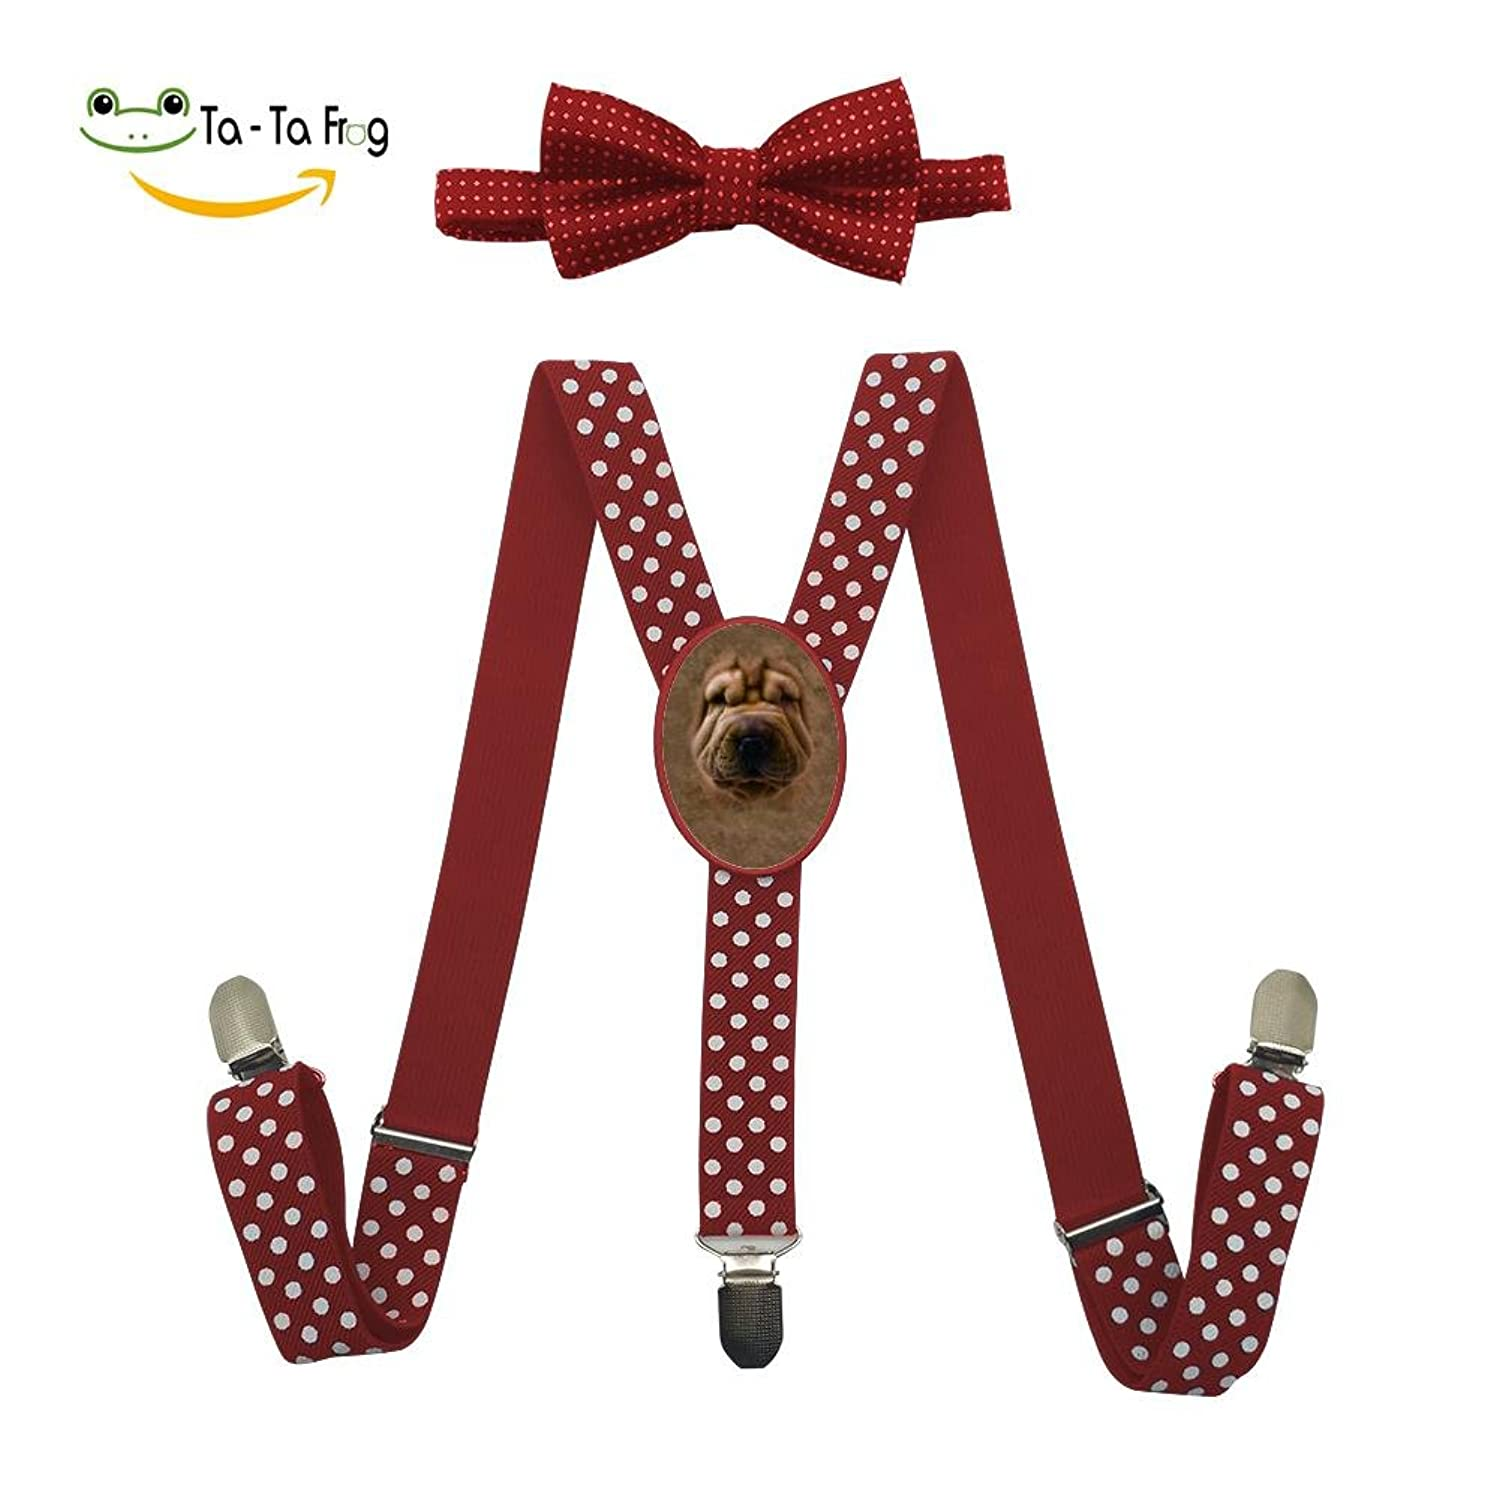 hot sell Big Face Shar Pei Puppy Adjustable Suspenders And Pre-Tied Bowtie Set For Kids Casual And Formal for sale